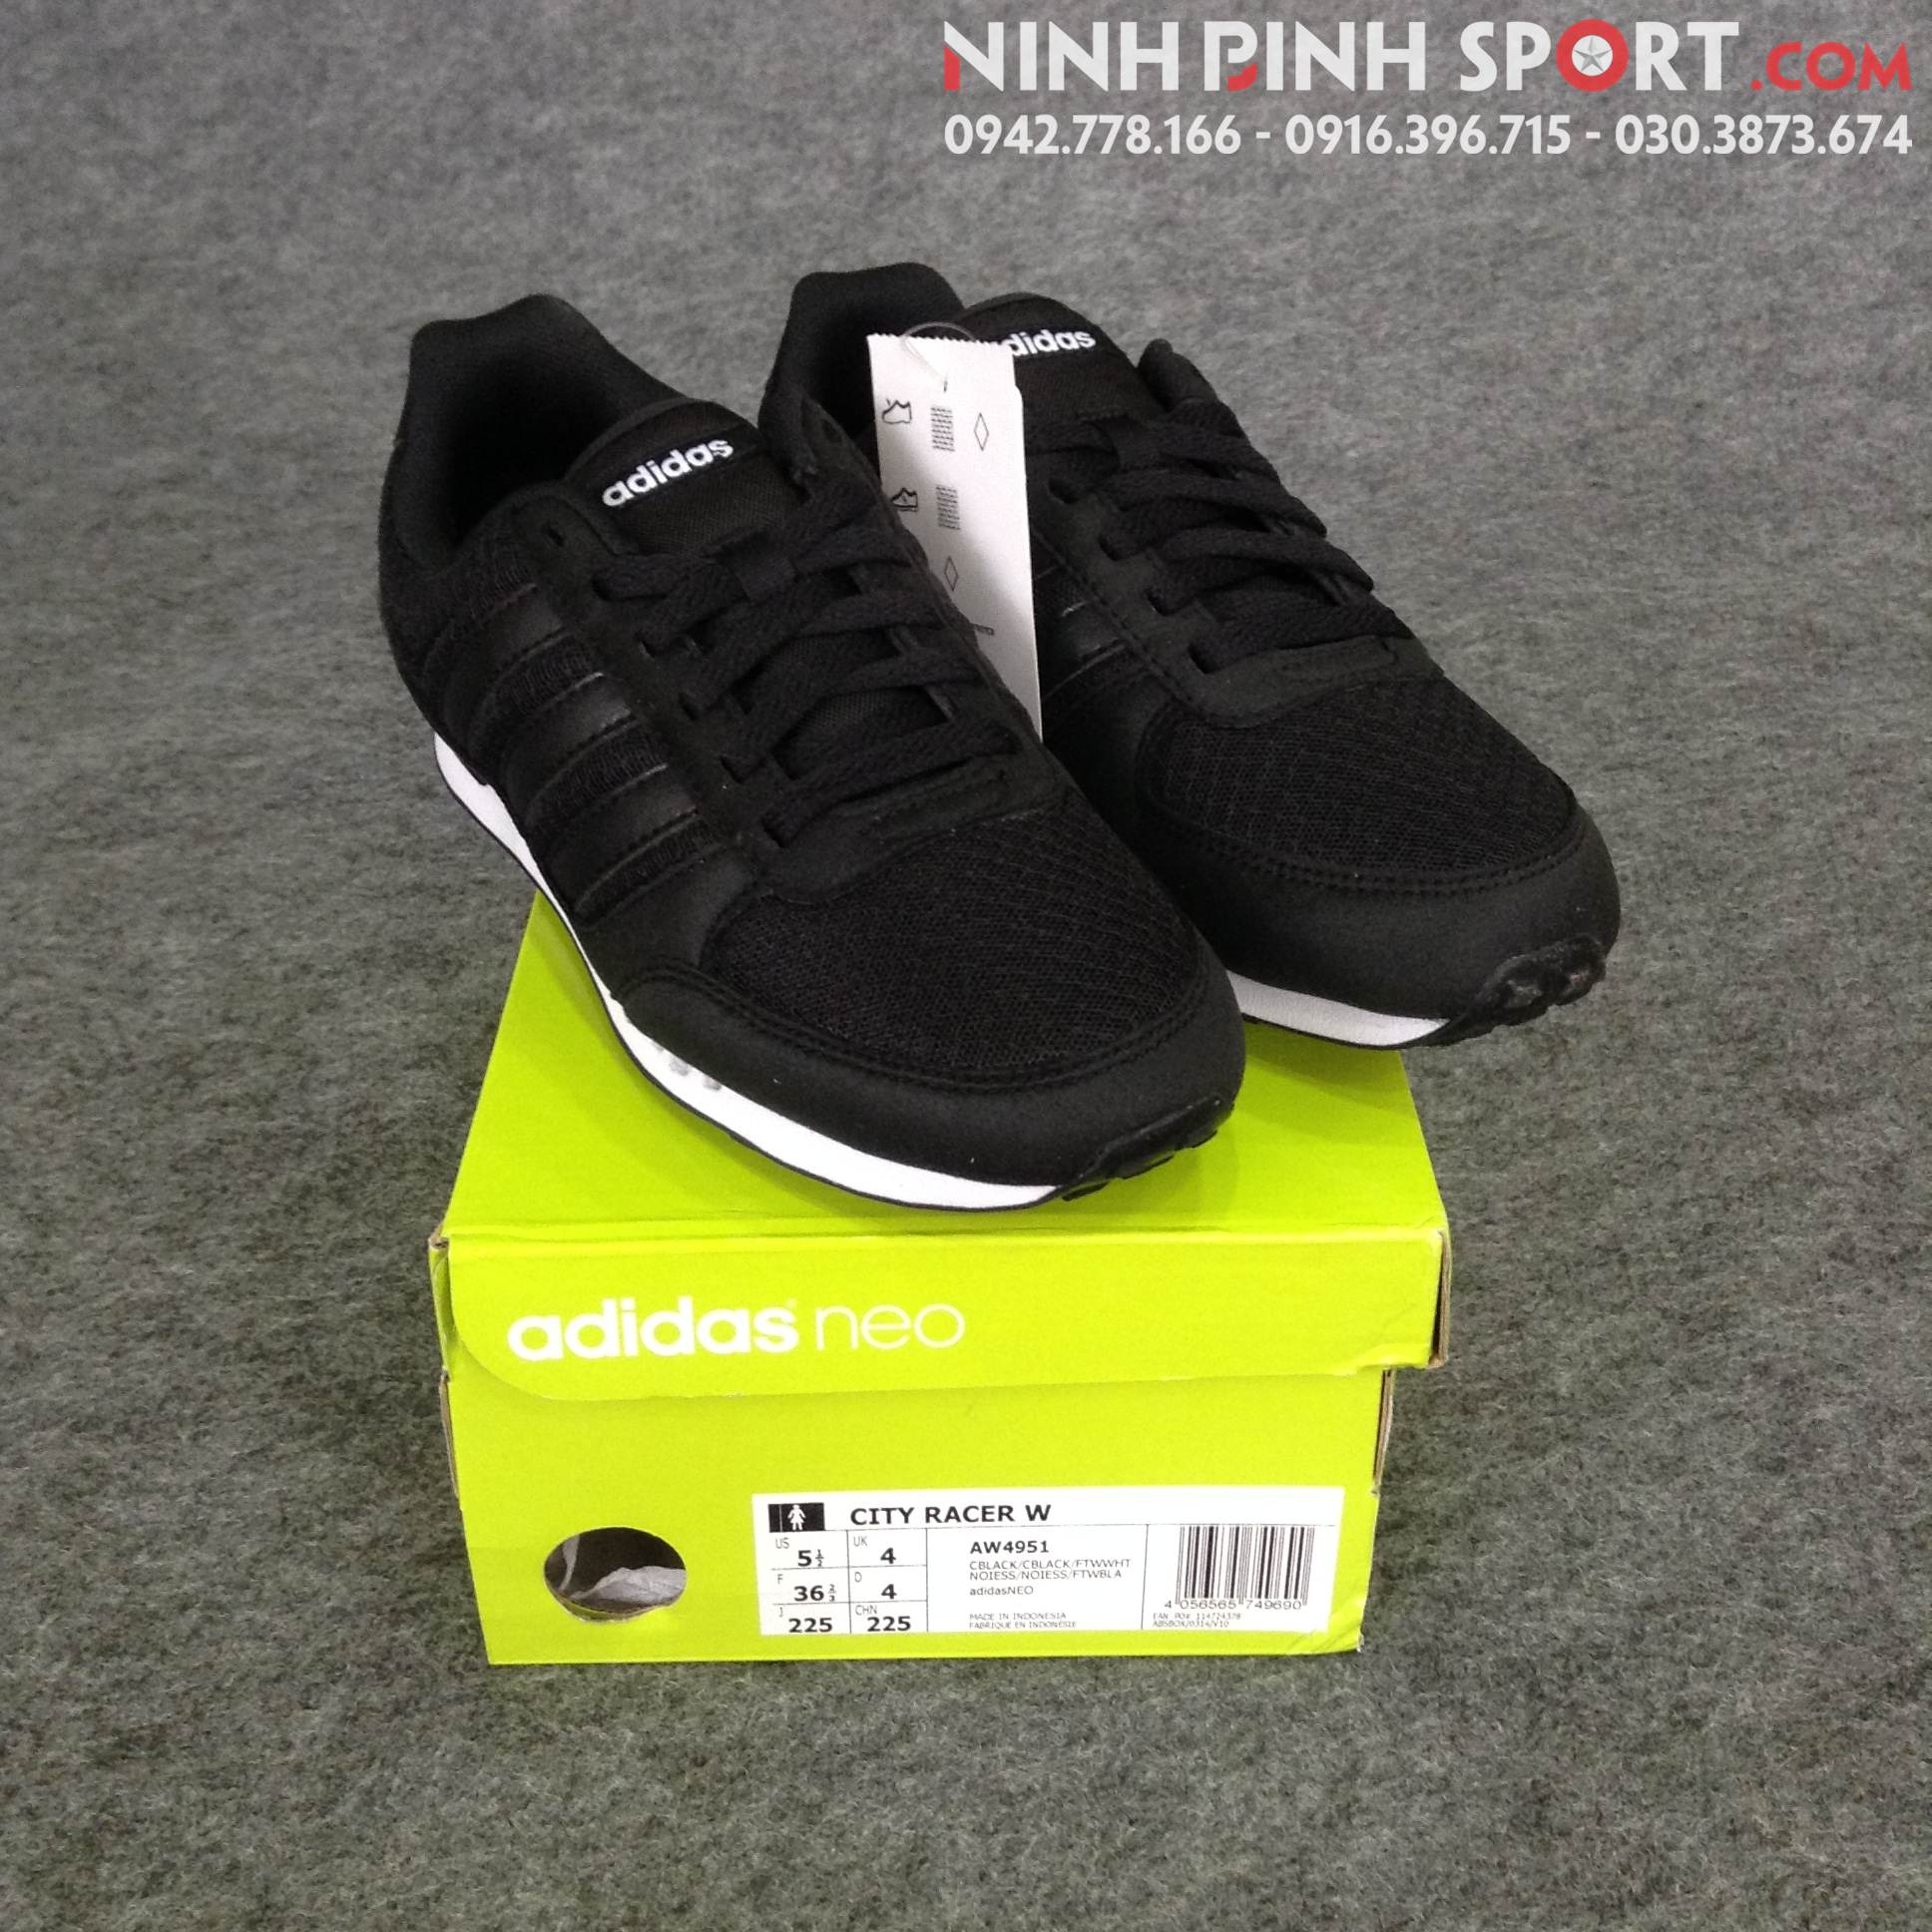 Giầy thể thao nữ Adidas Neo City Racer Shoes - Black AW4951